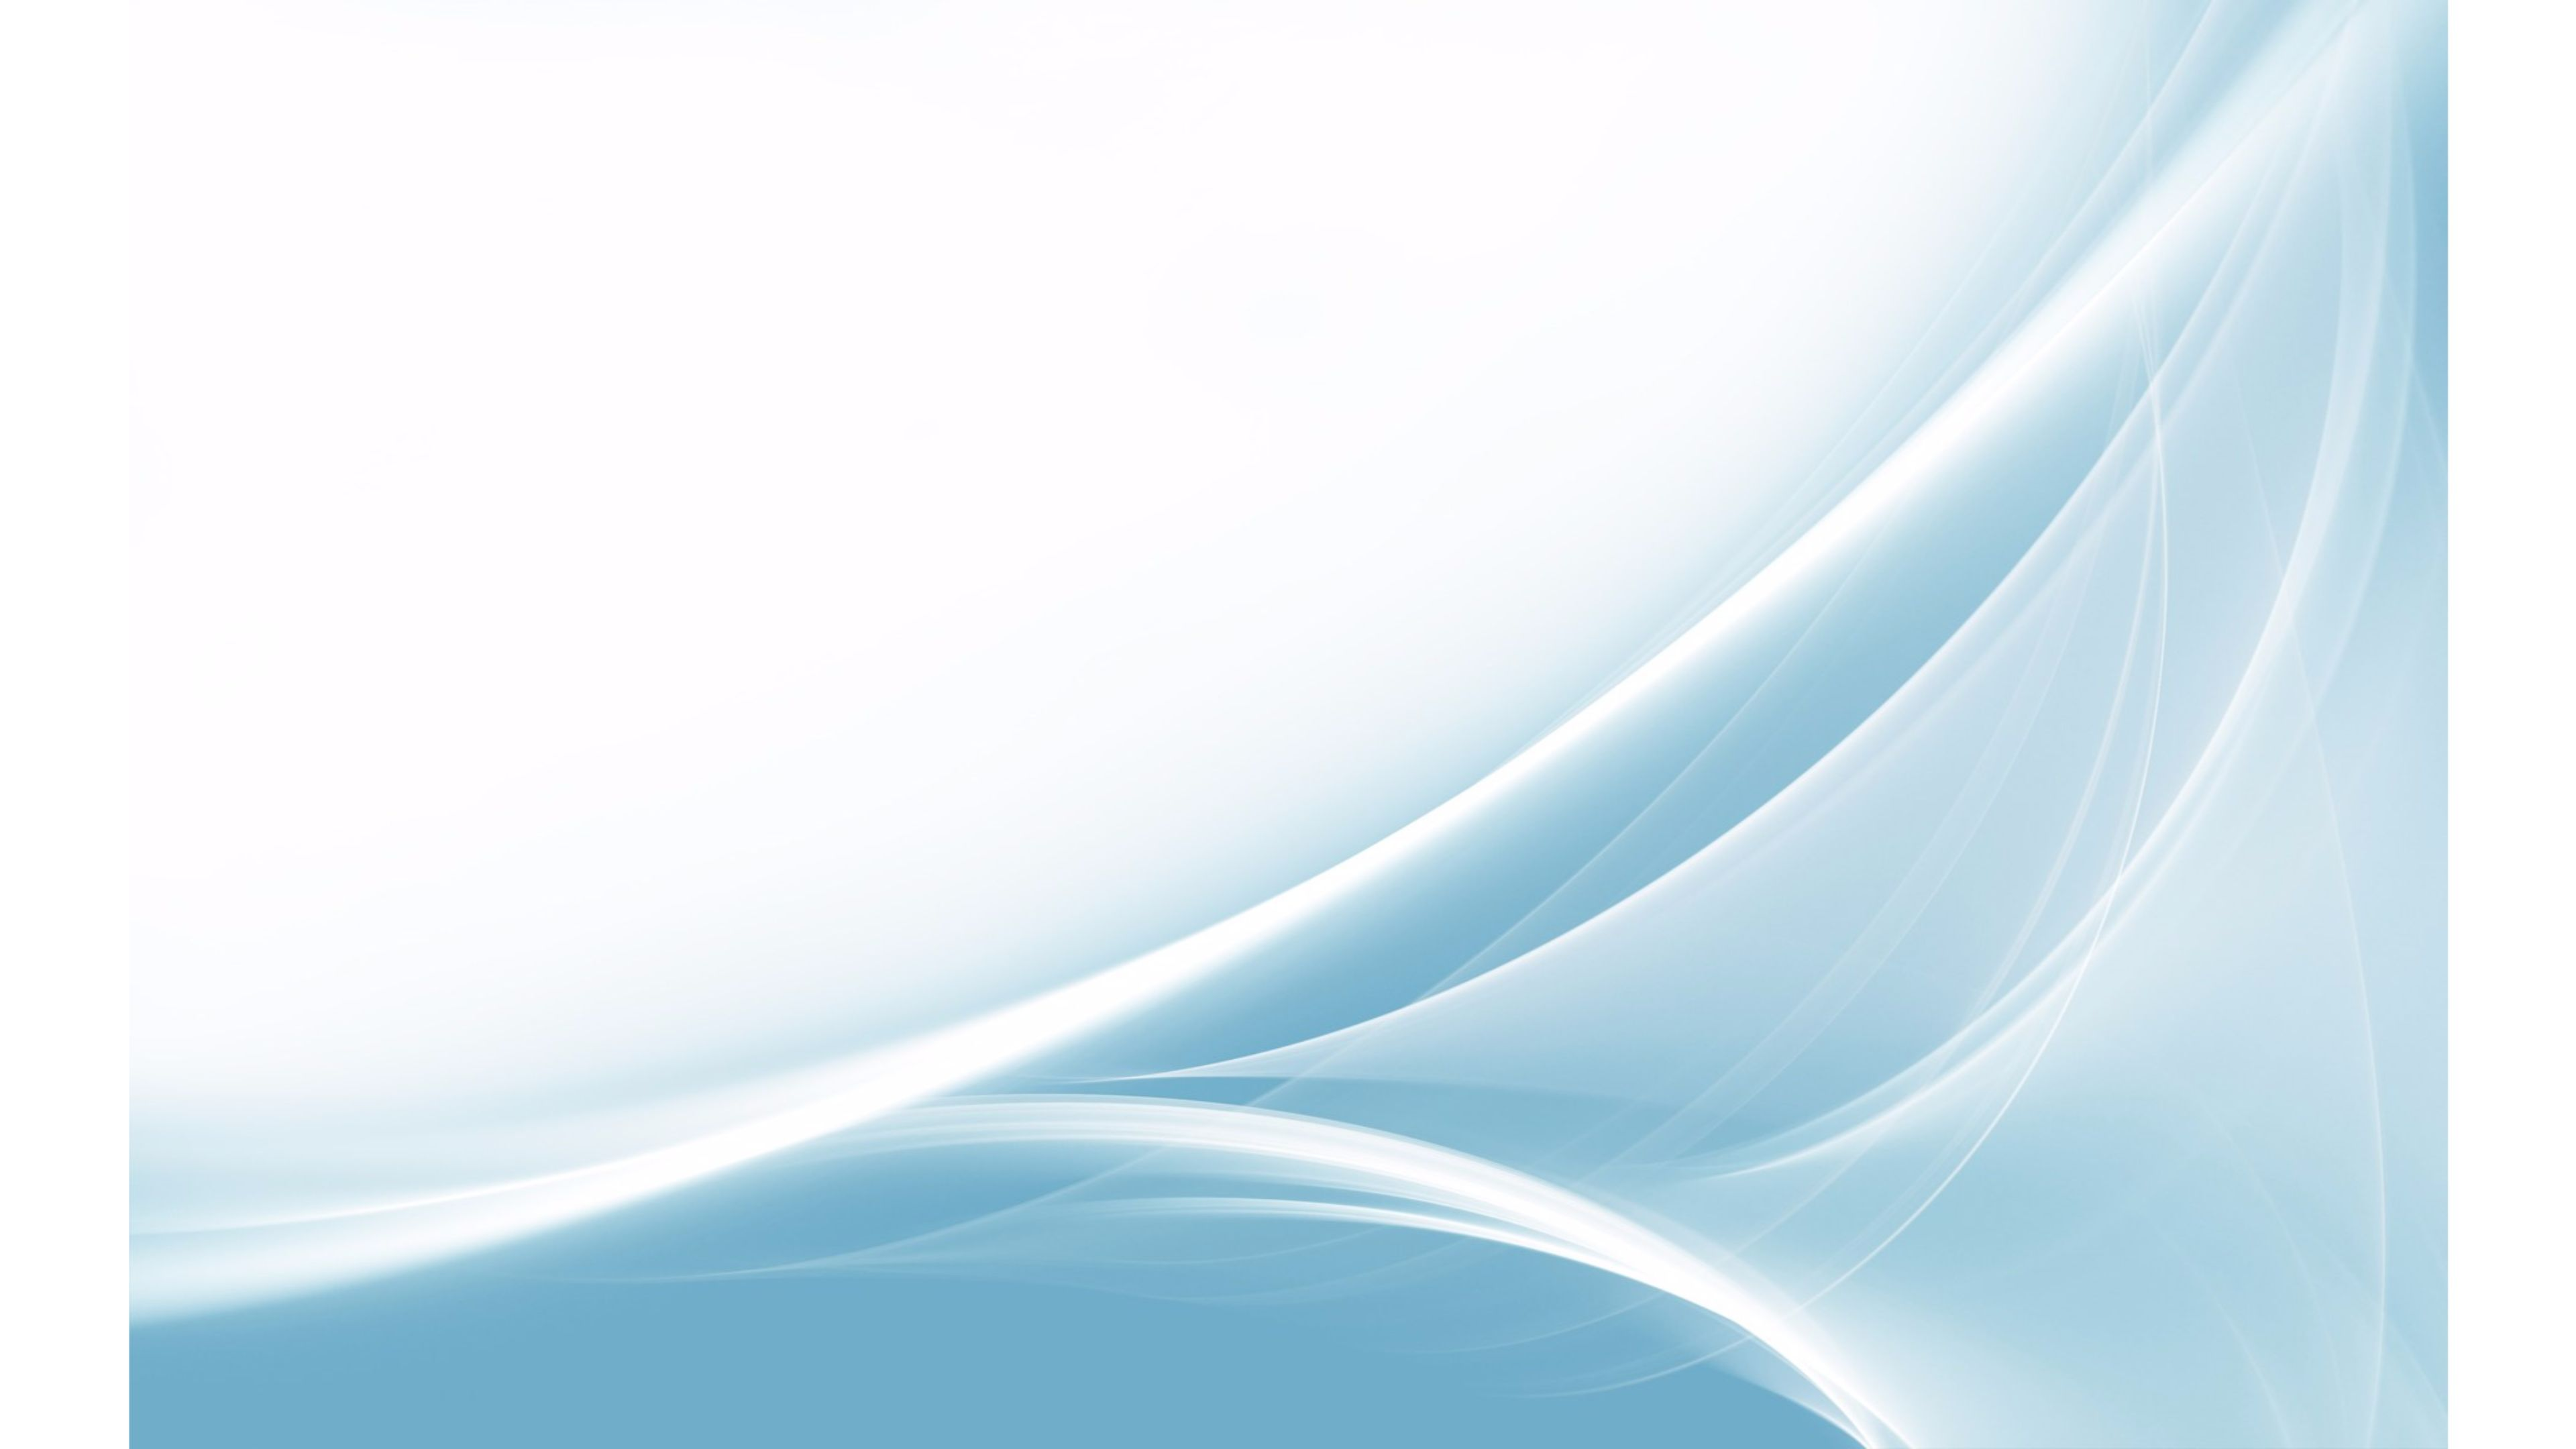 White And Blue Abstract Wallpapers Background On Wallpaper 1080p Hd Blue And White Wallpaper Blue Background Wallpapers Blue White Background